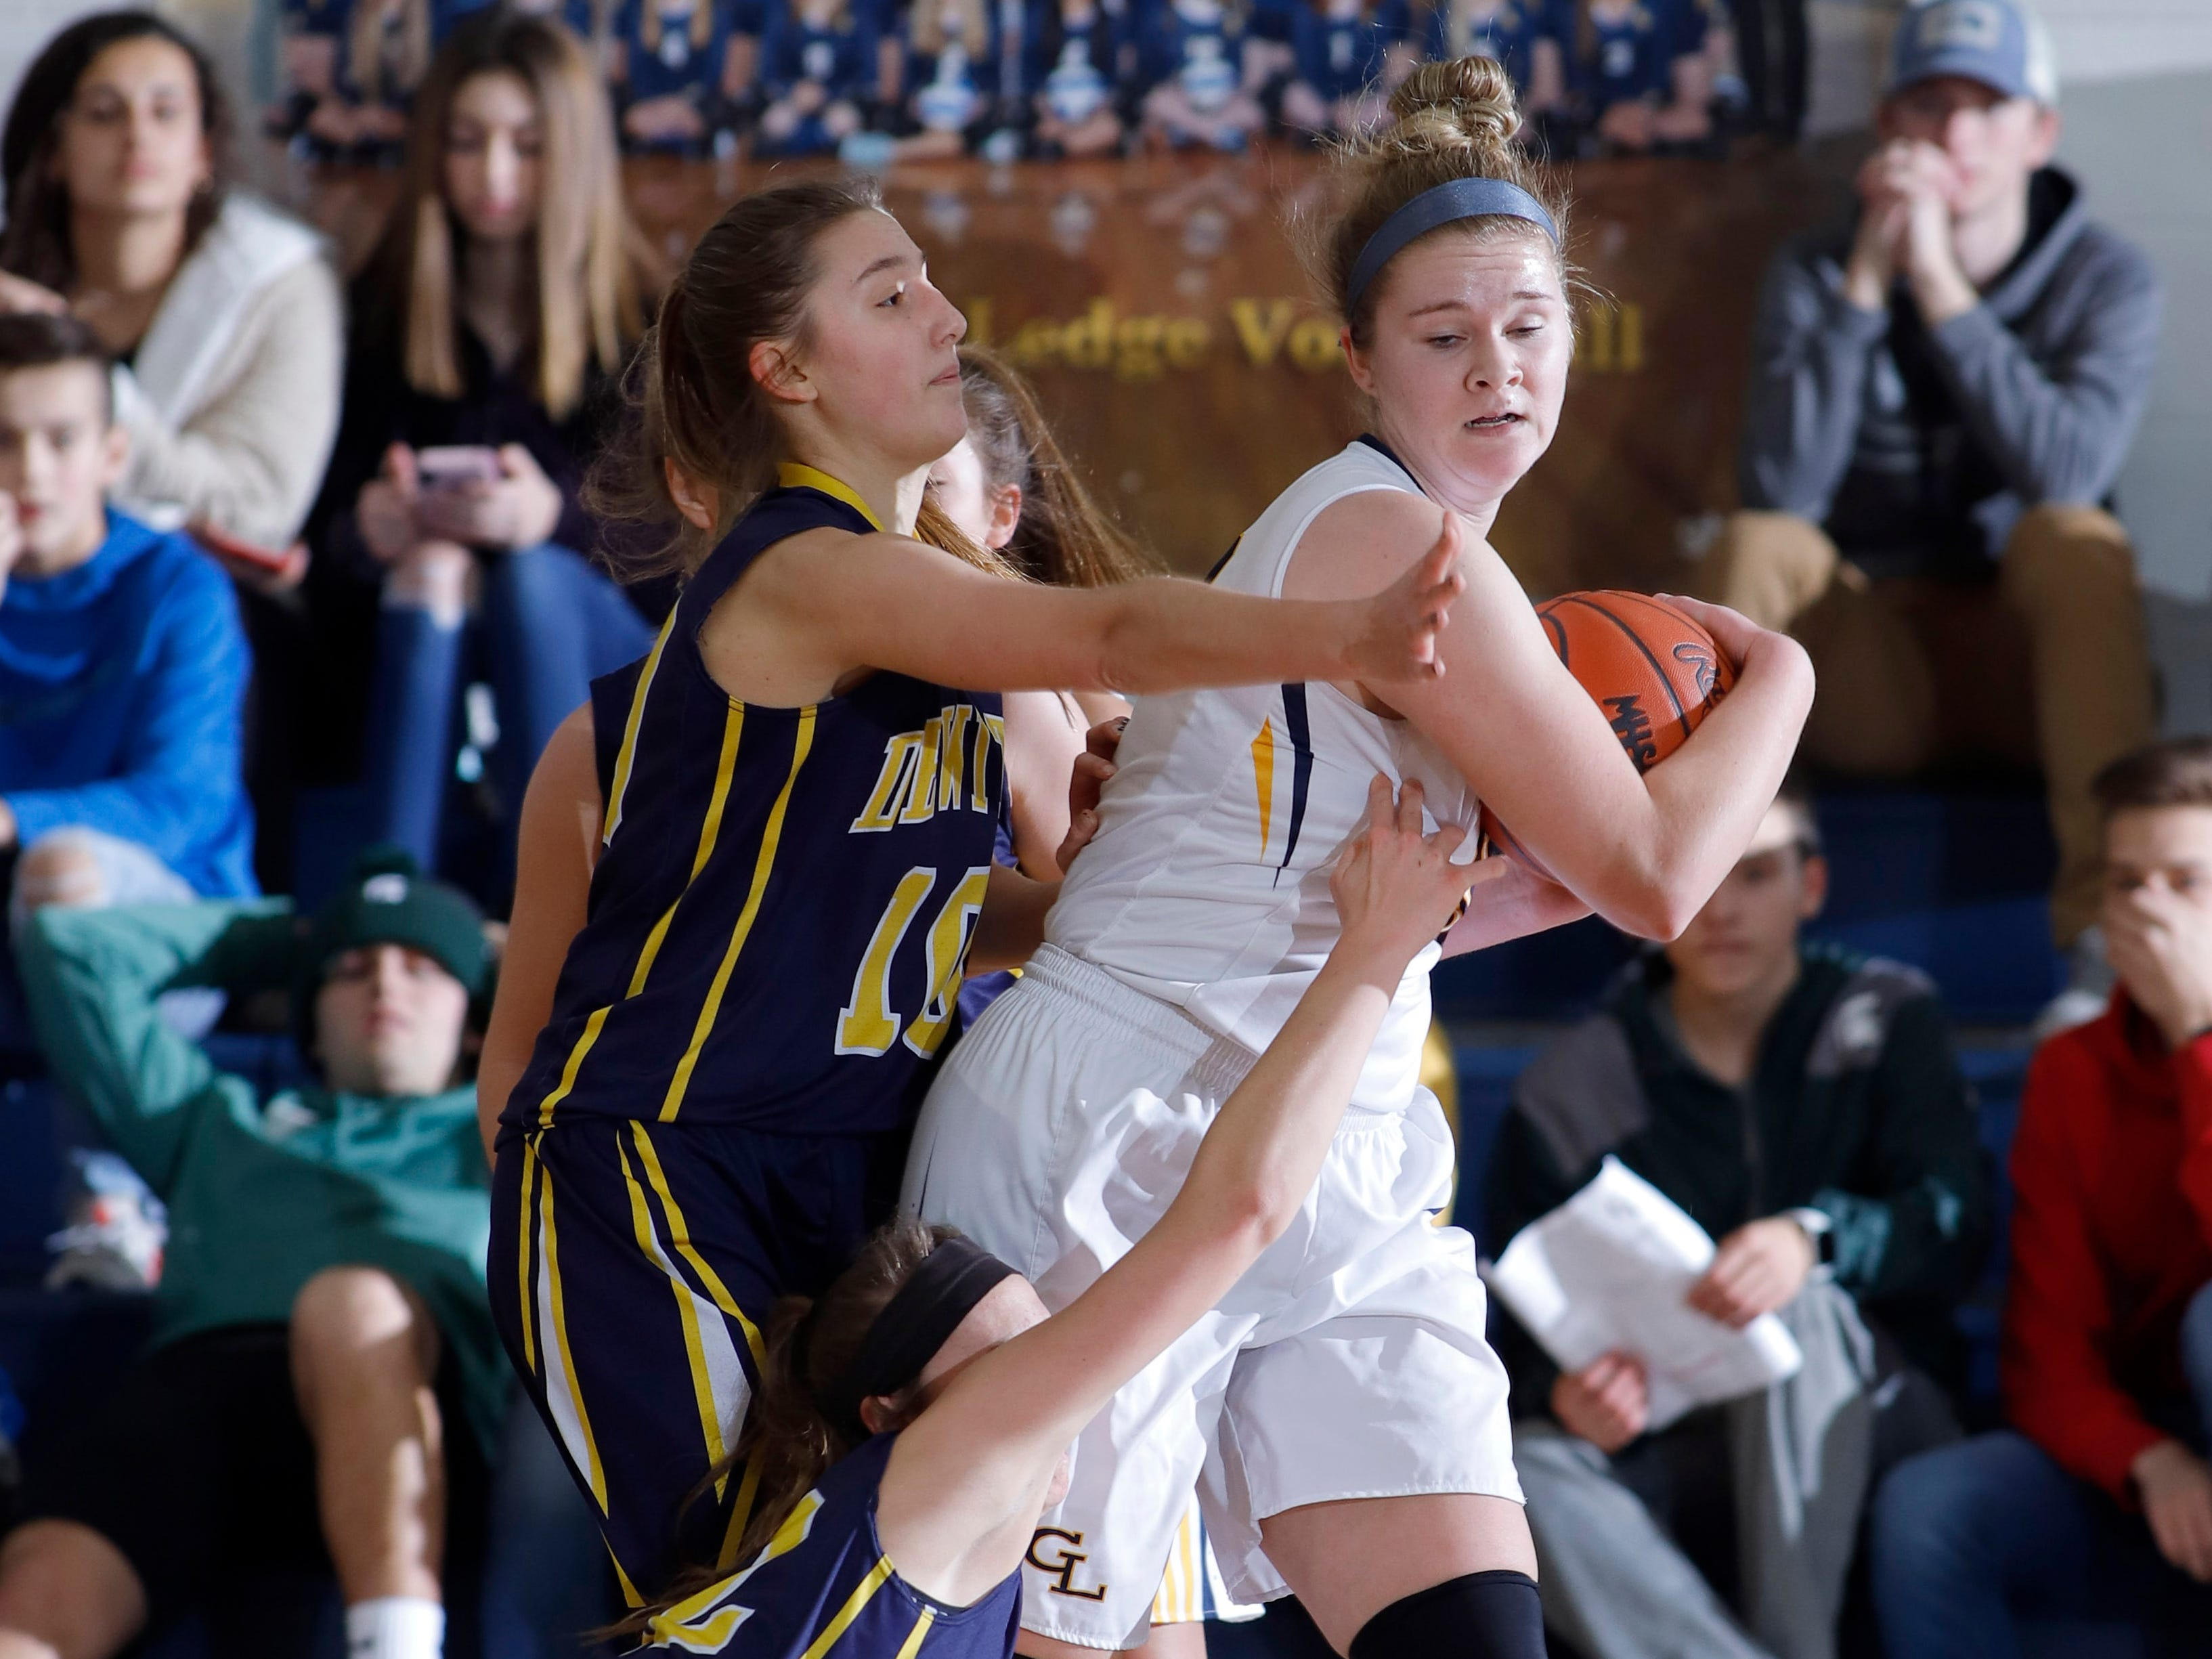 Grand Ledge's Courtney Sharland, right, is pressured by DeWitt's Sydney Mills, left, and Maddie Petersen, bottom, Tuesday, Jan. 15, 2019, in Grand Ledge, Mich.